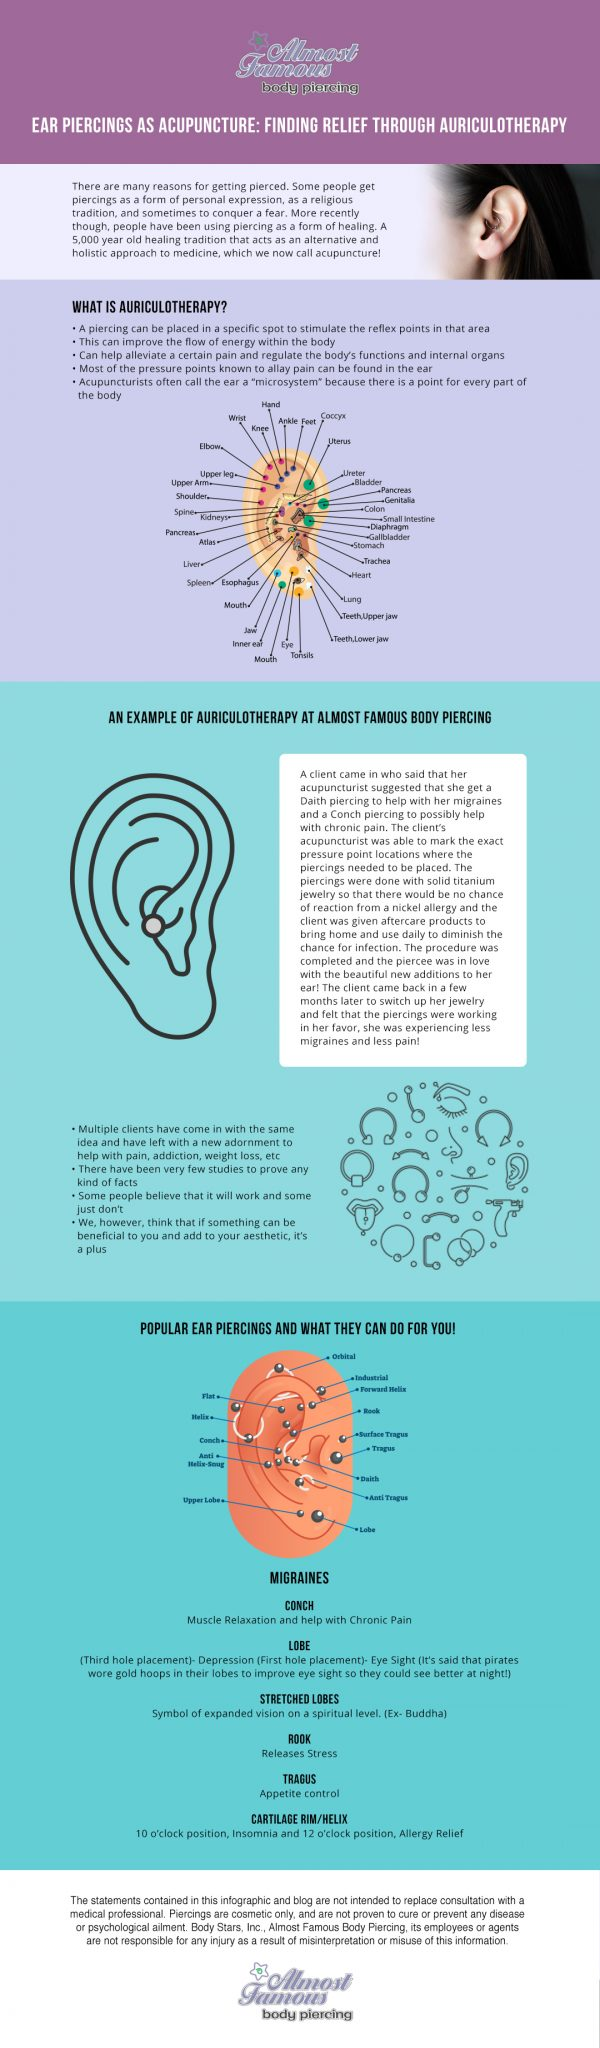 Ear Piercings as Acupuncture- Finding Relief through Auriculotherapy infographic - Almost Famous Body Piercing